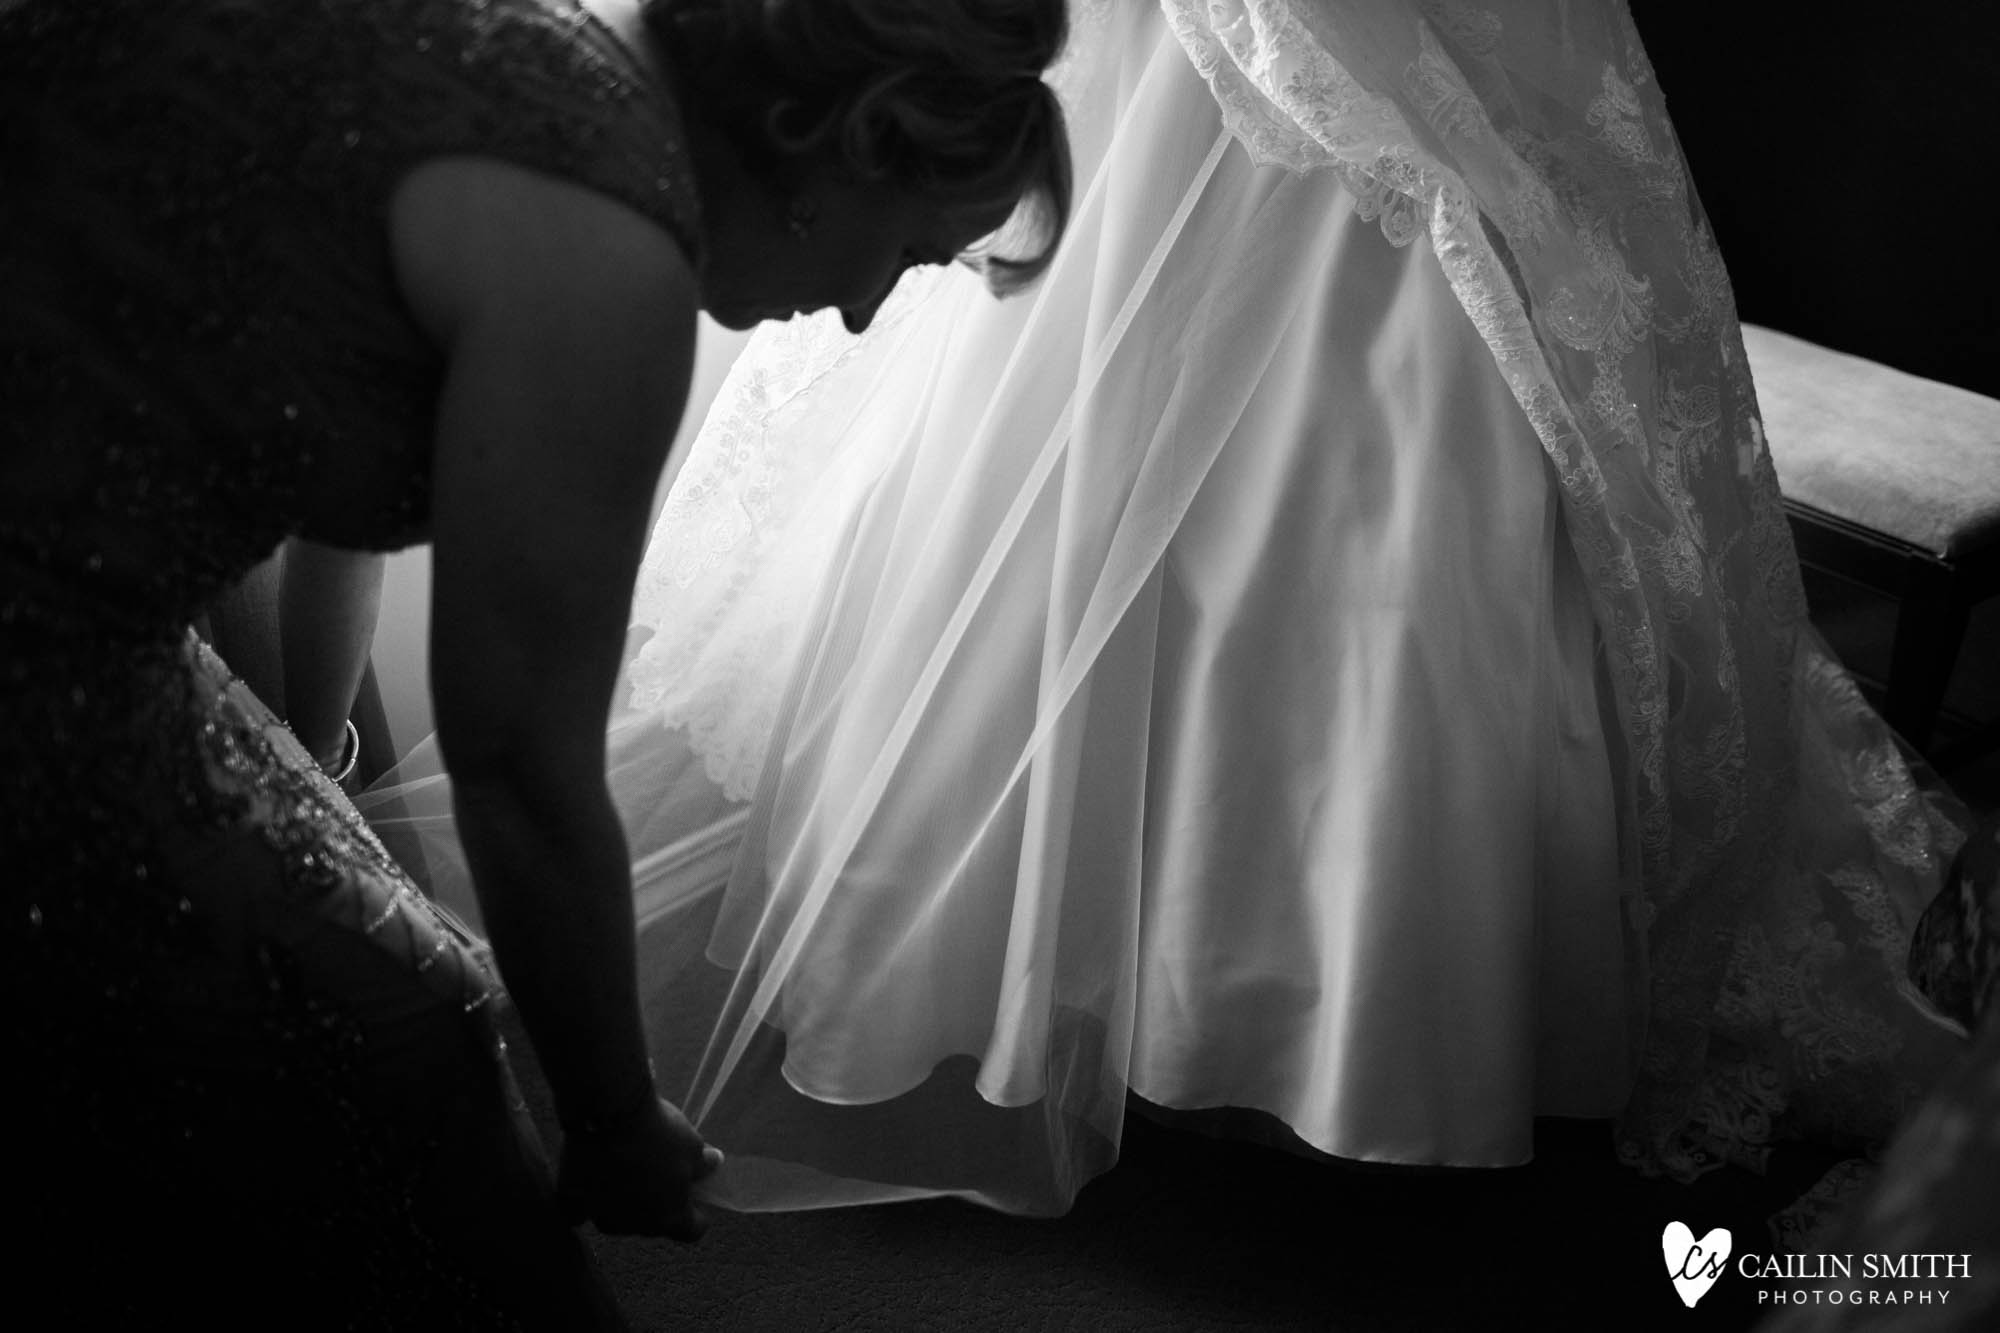 Christie_Nathan_Wedding_Photography_0013.jpg